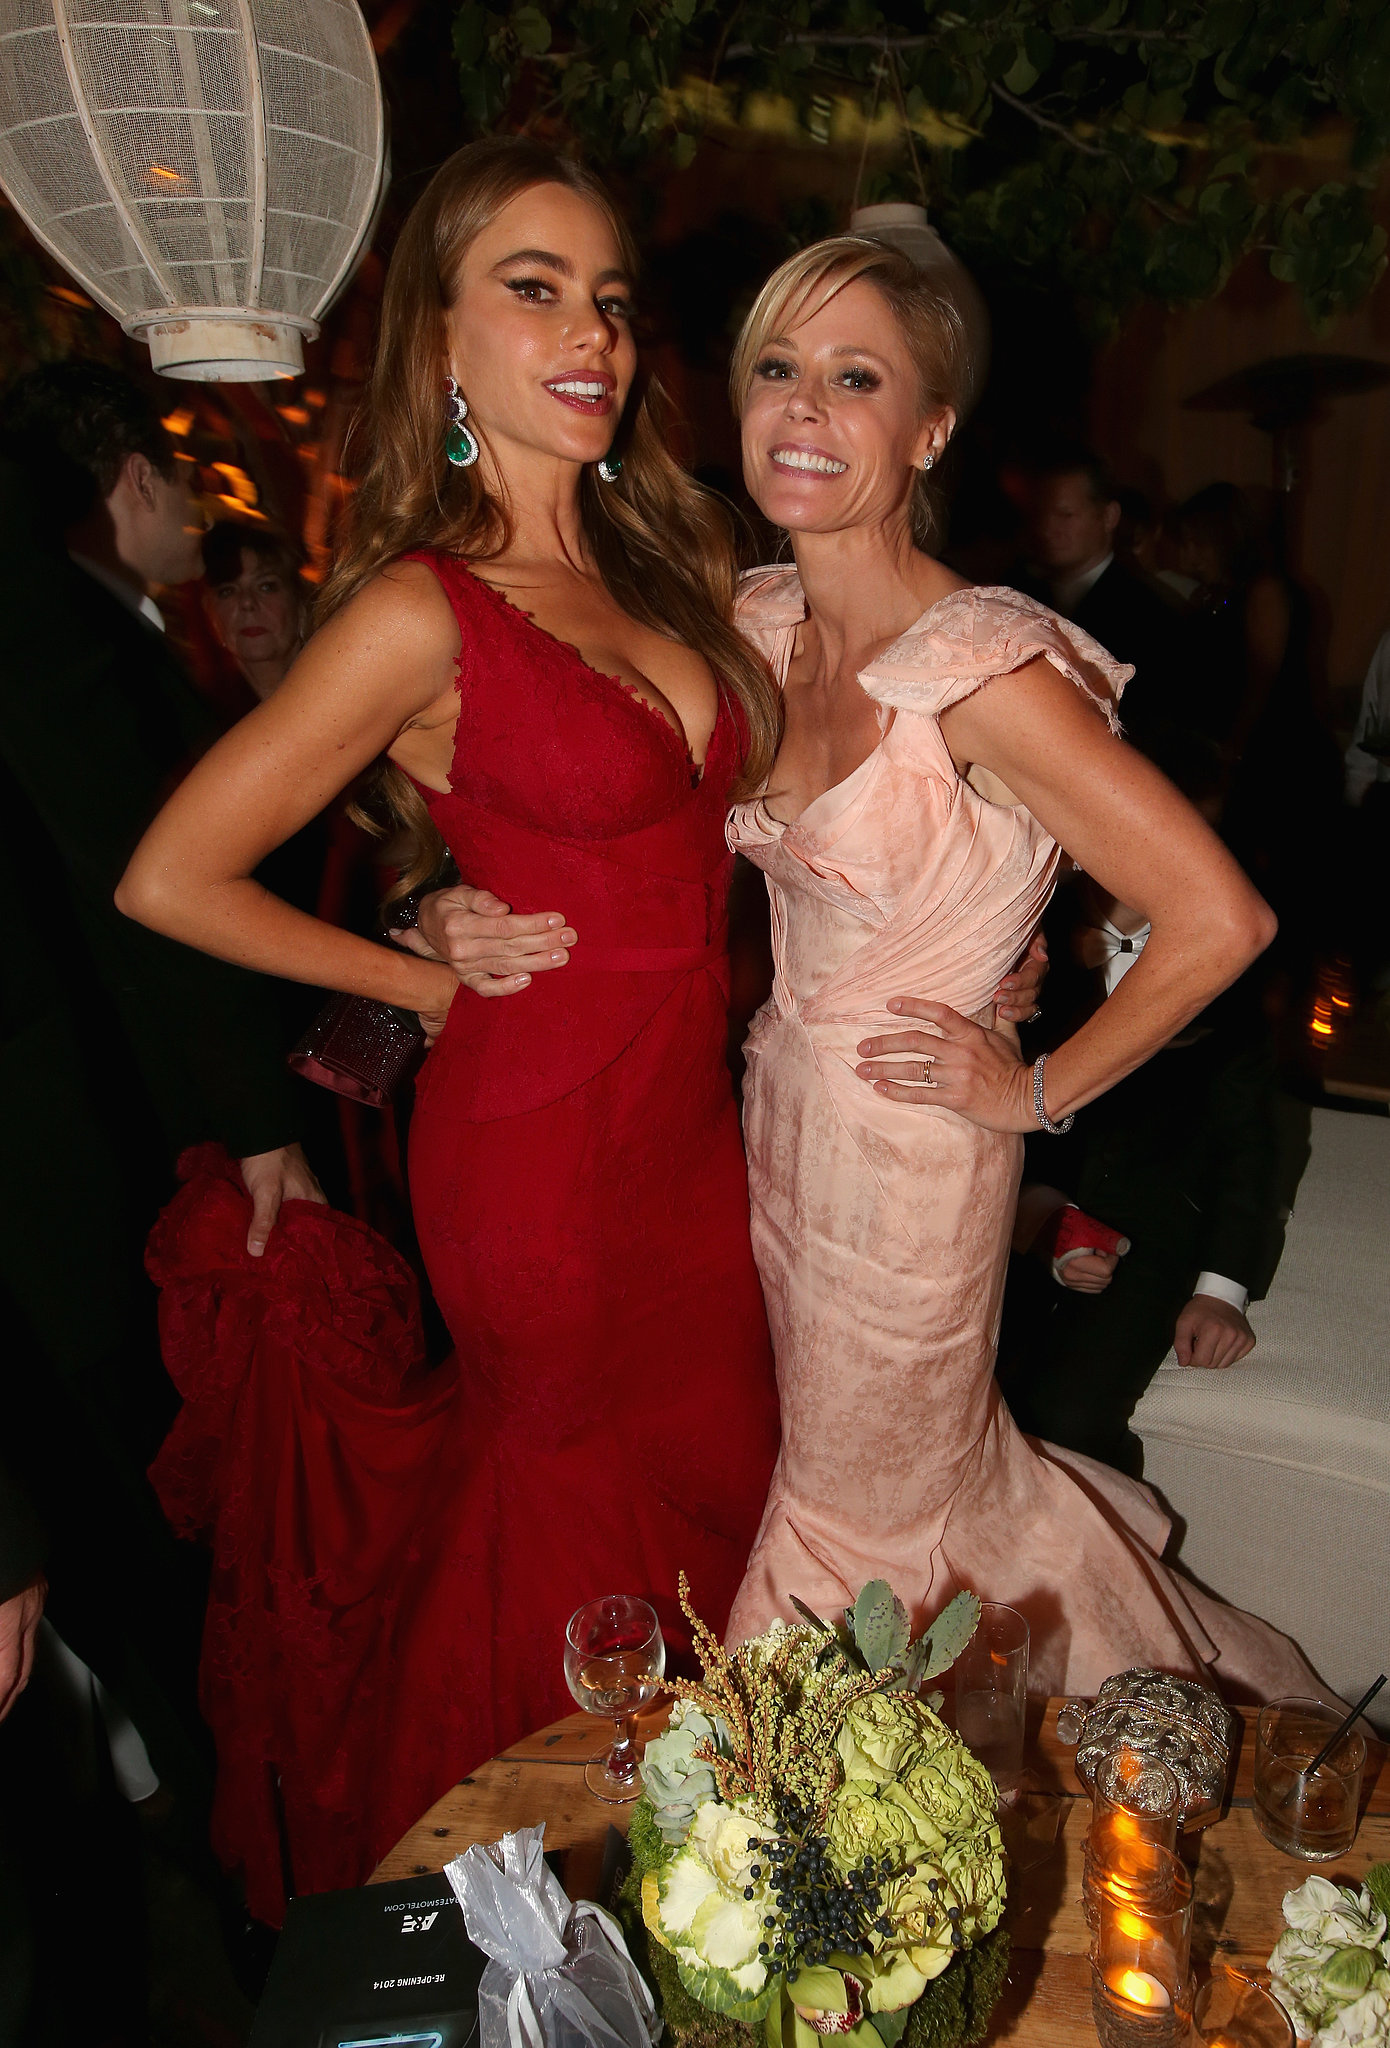 Sofia Vergara and Julie Bowen joined up for a photo at the Fox afterparty.